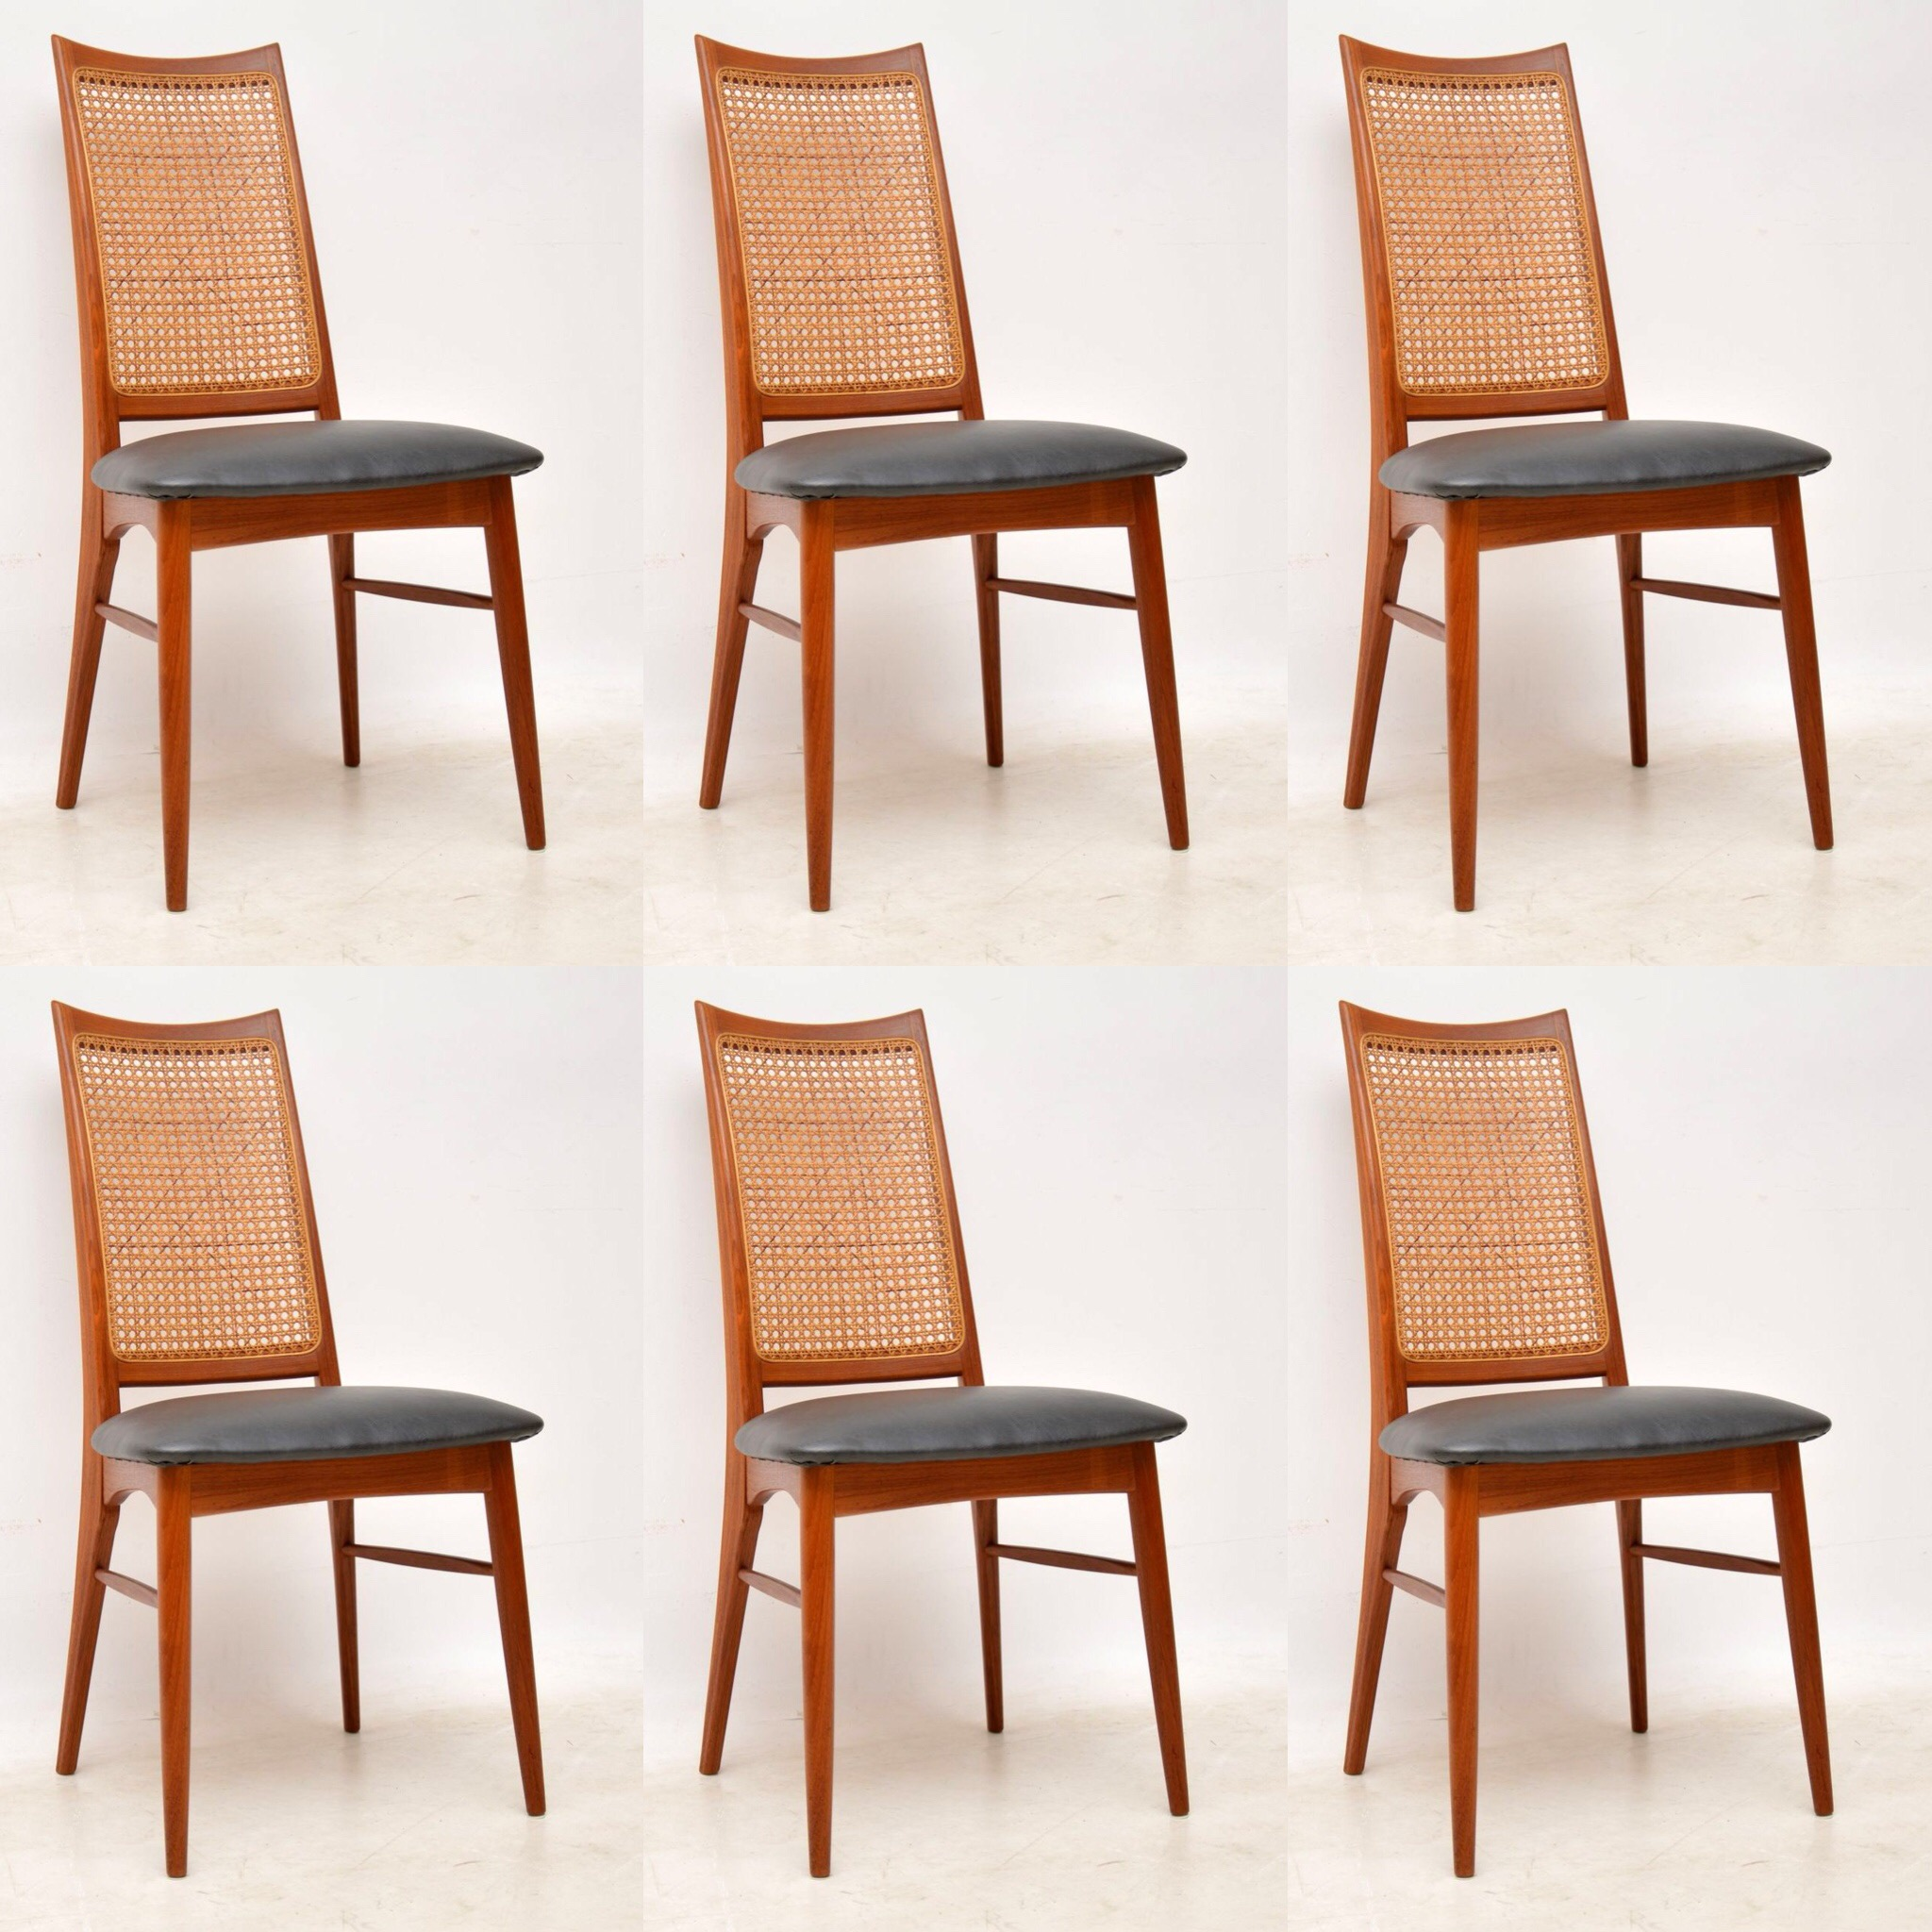 Danish teak retro dining chairs by niels koefoed vintage 1960s